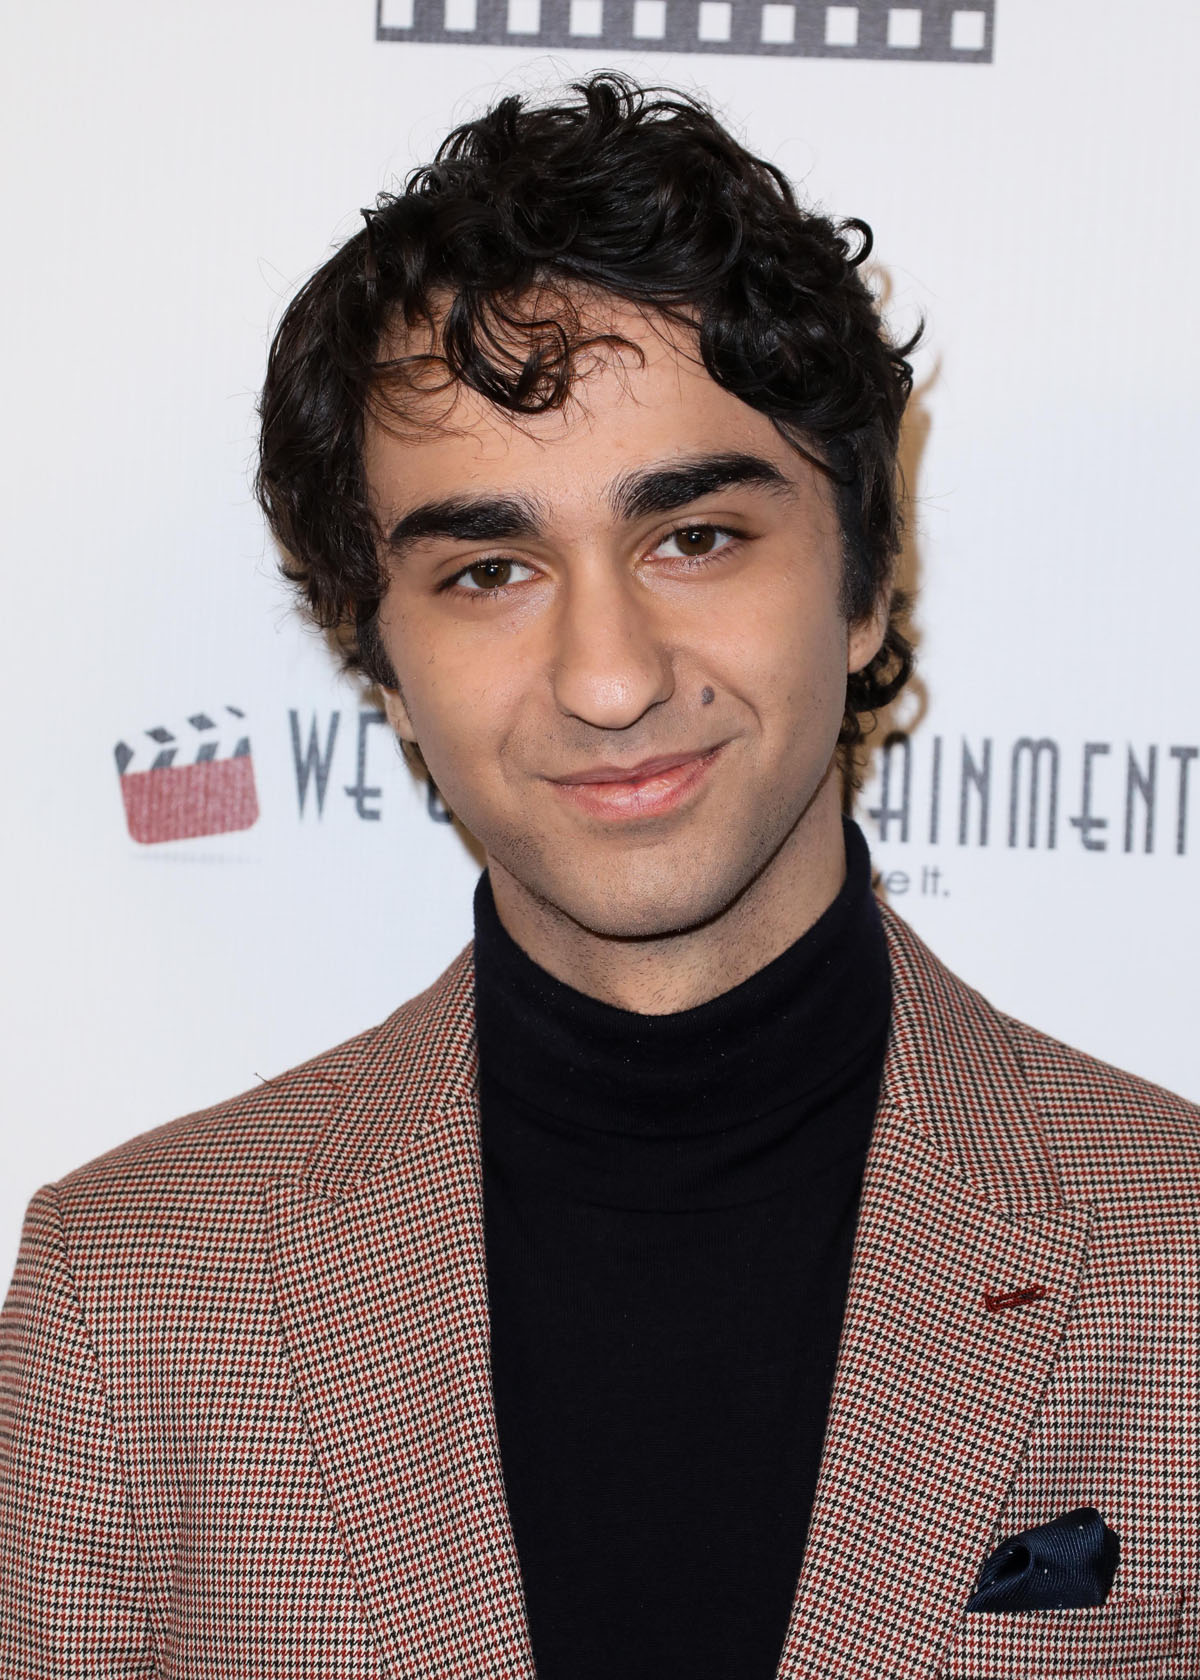 Actor Alex Wolff arrives at the 2nd Annual Los Angeles Online Film Critics Society Award Ceremony held at the Taglyan Cultural Complex on January 9, 2019 in Hollywood, Los Angeles, California, United States. (Photo by David Acosta/Image Press Agency)